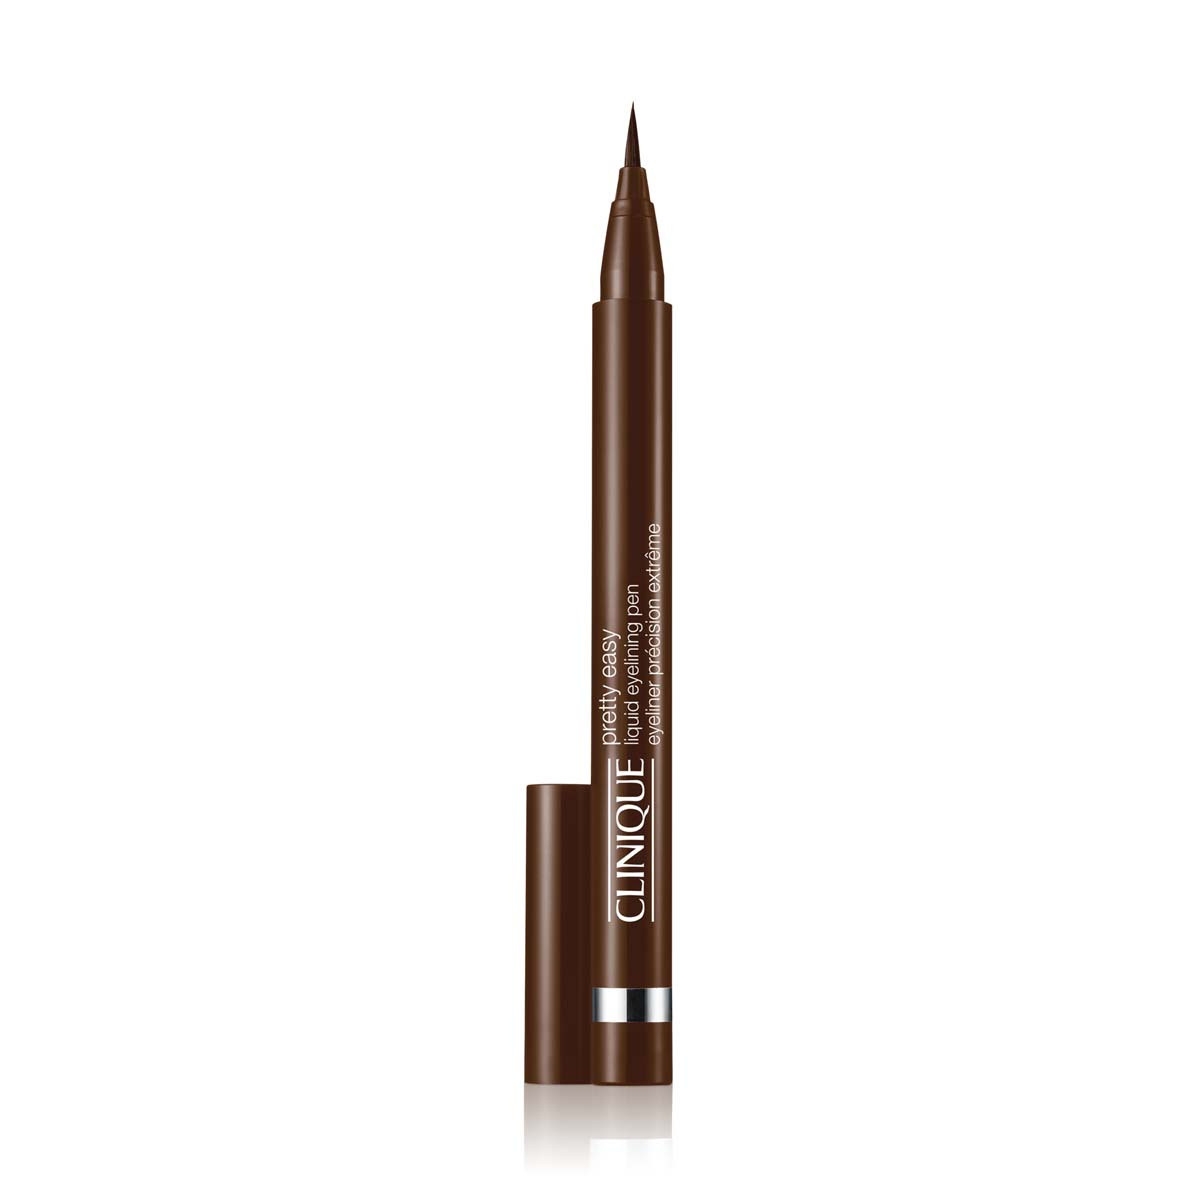 Clinique pretty easy liquid eyelining pen - 02 brown, 02 BROWN, large image number 0